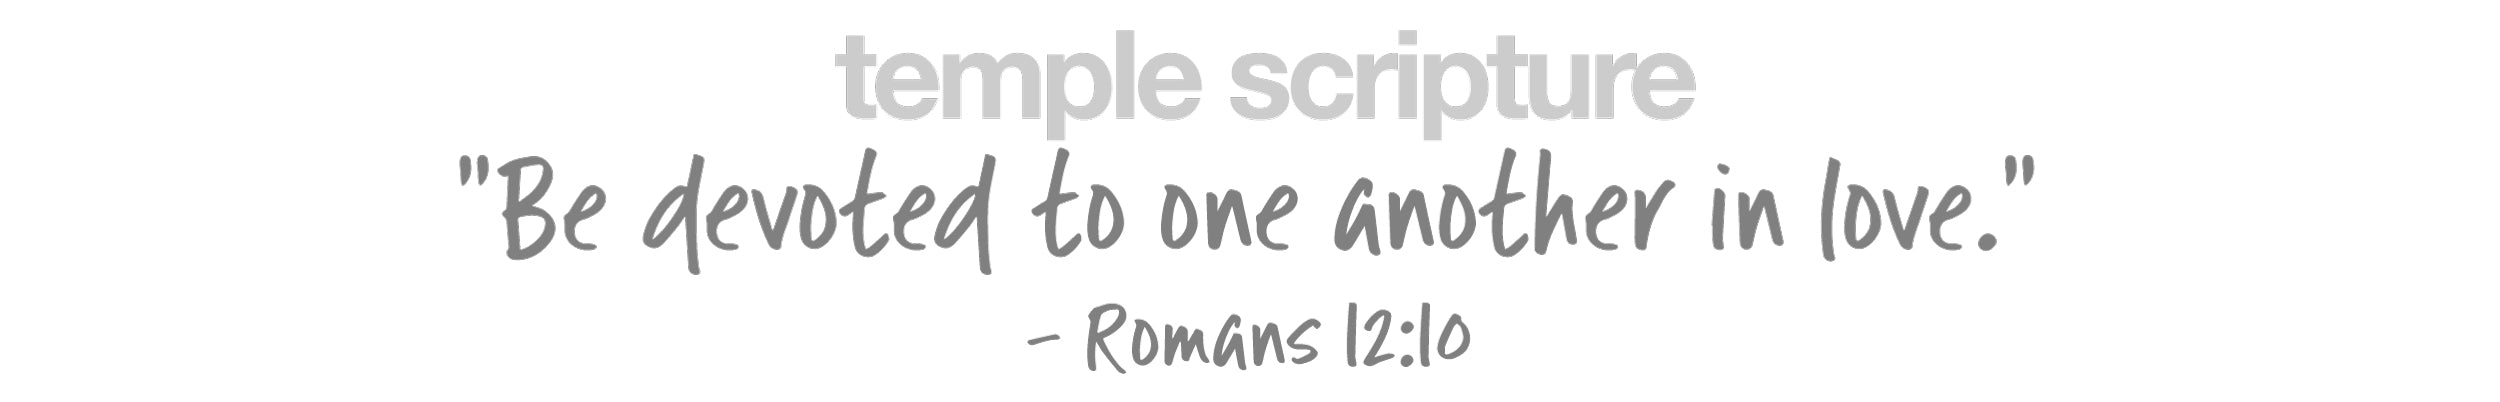 Be devoted to one another in love, -Romans 12:10